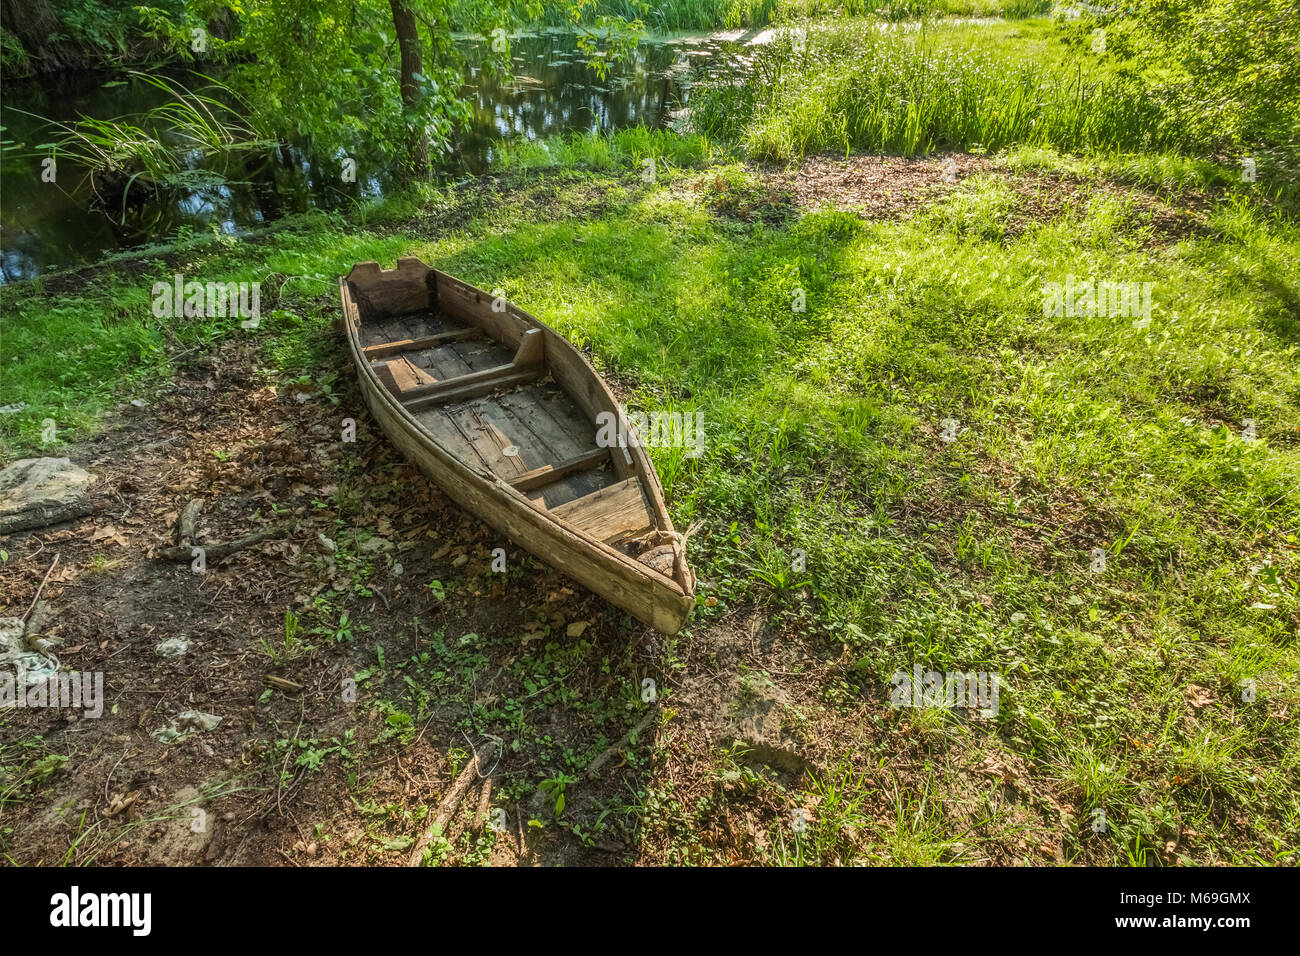 The old forgotten boat does not bank the swamp among the bushes and grass - Stock Image